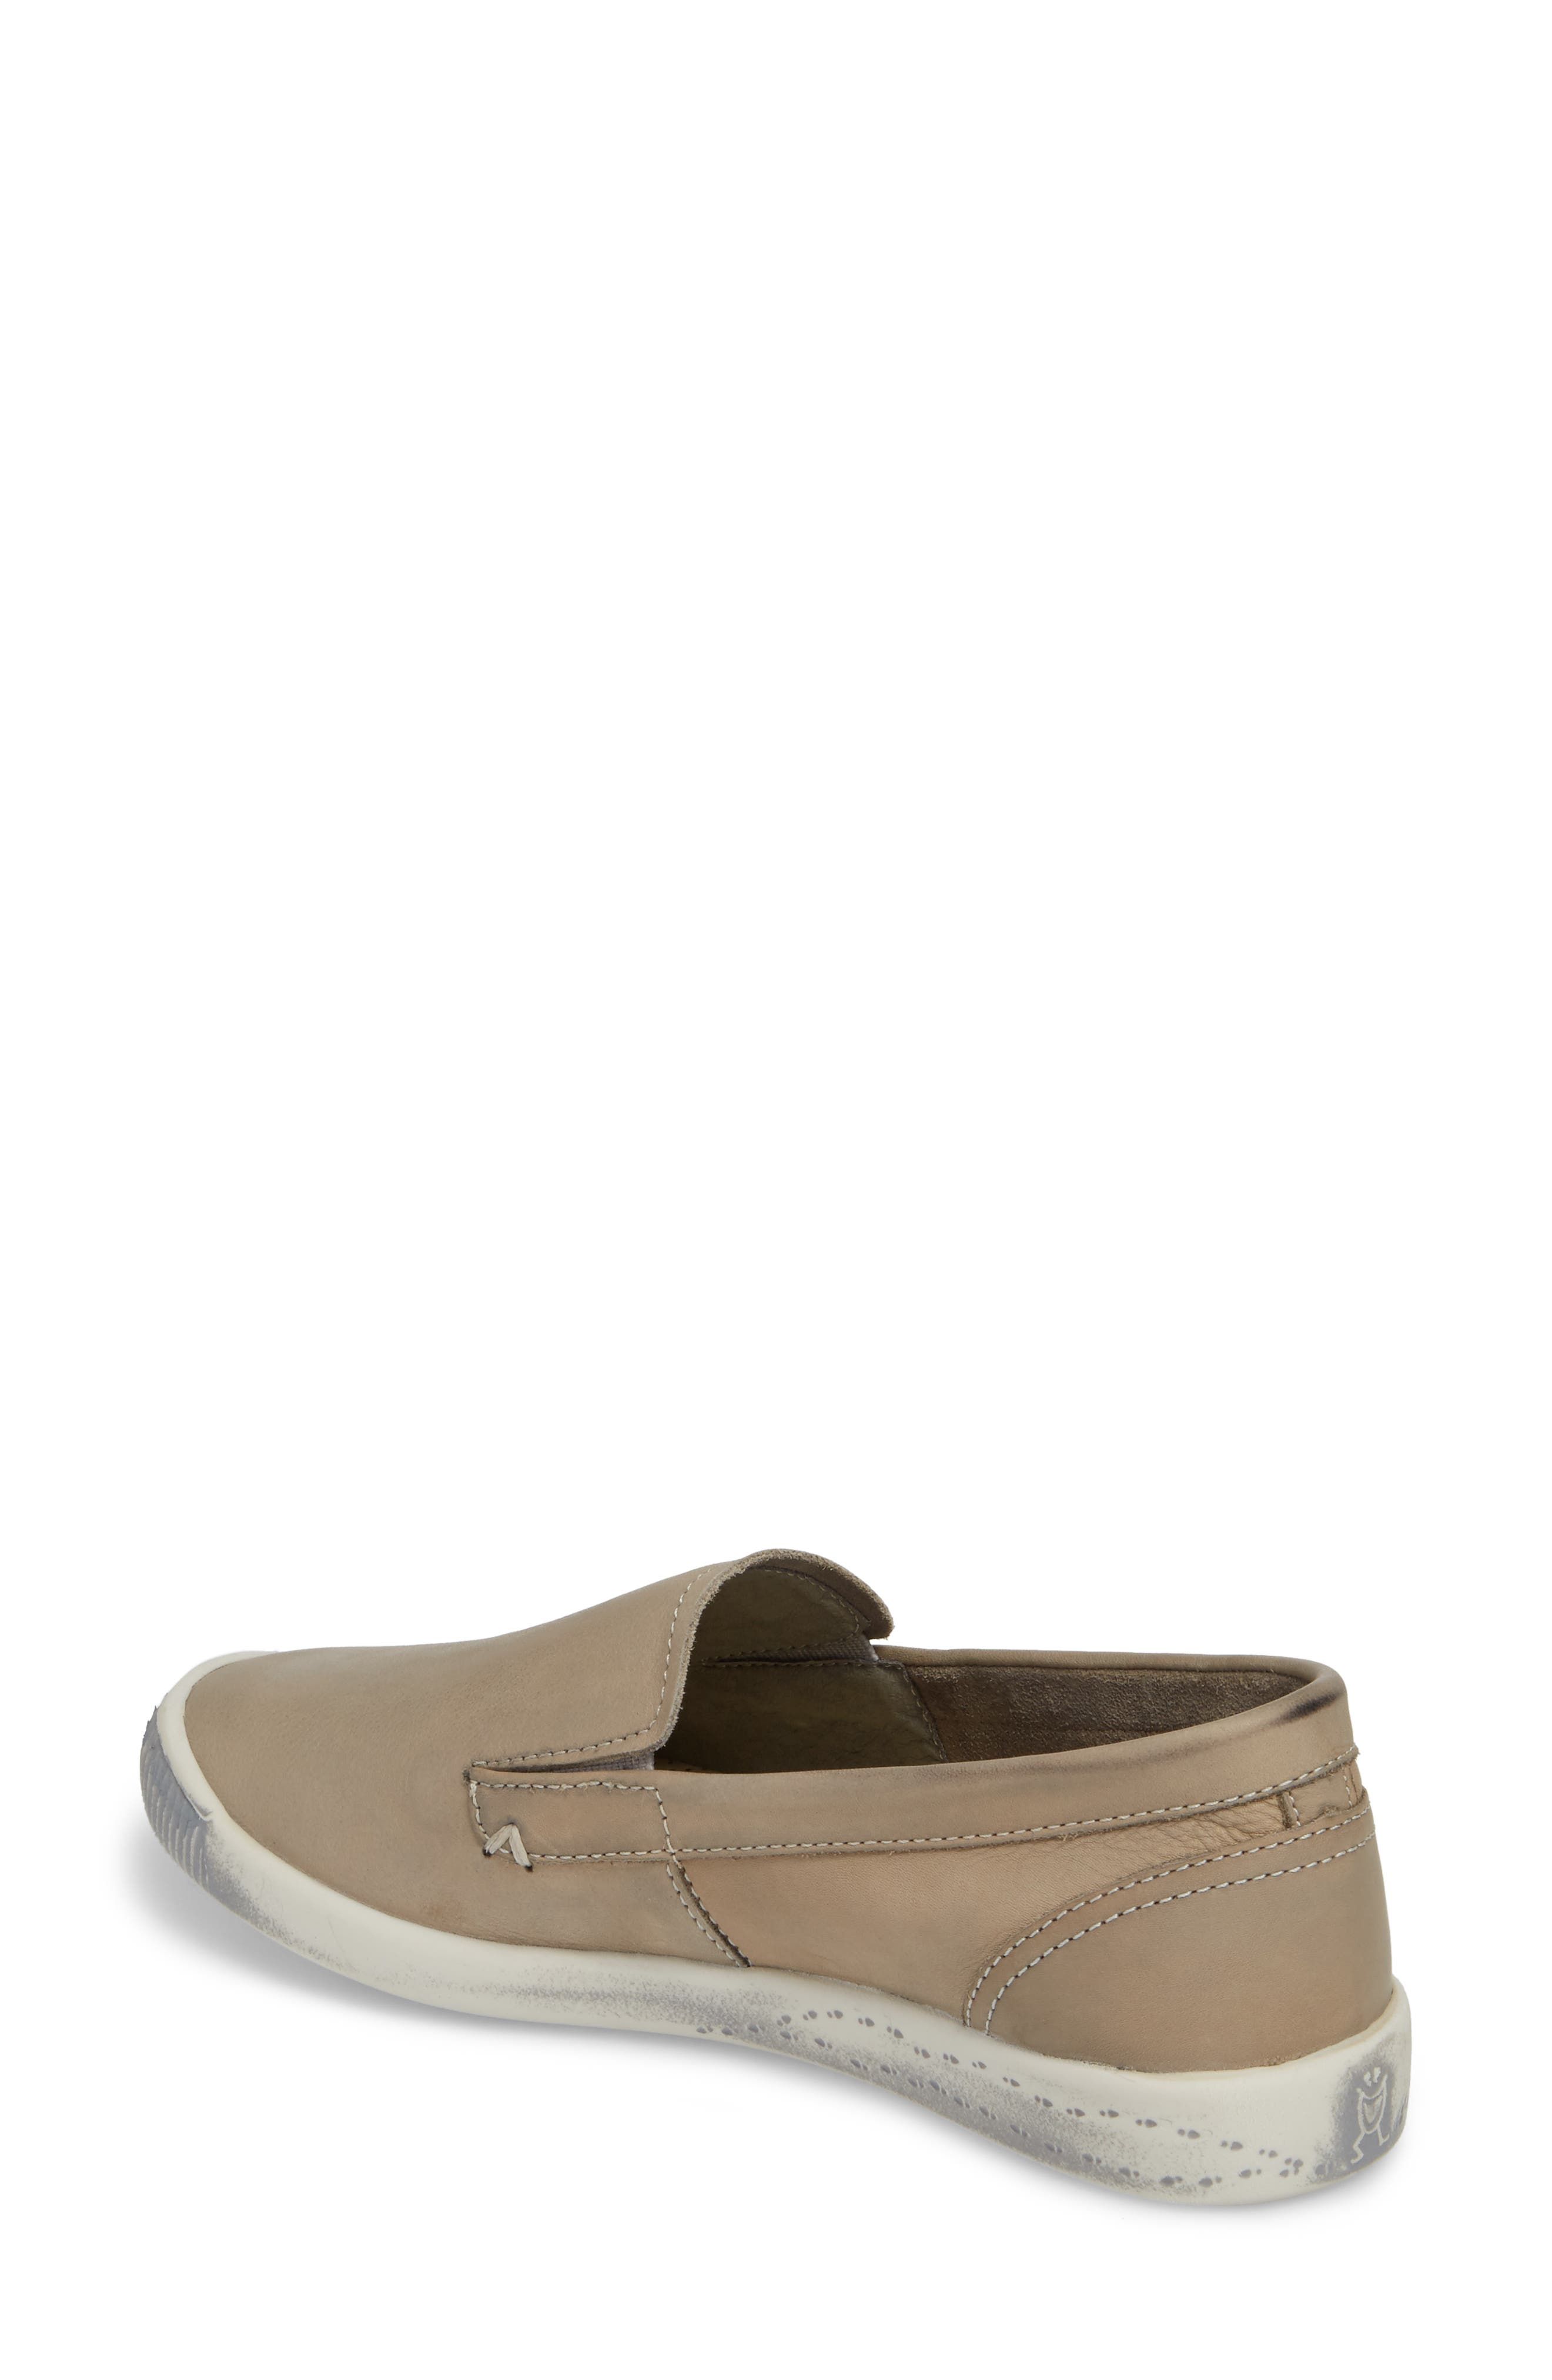 Ita Slip-On Sneaker,                             Alternate thumbnail 2, color,                             Taupe/ Taupe Leather